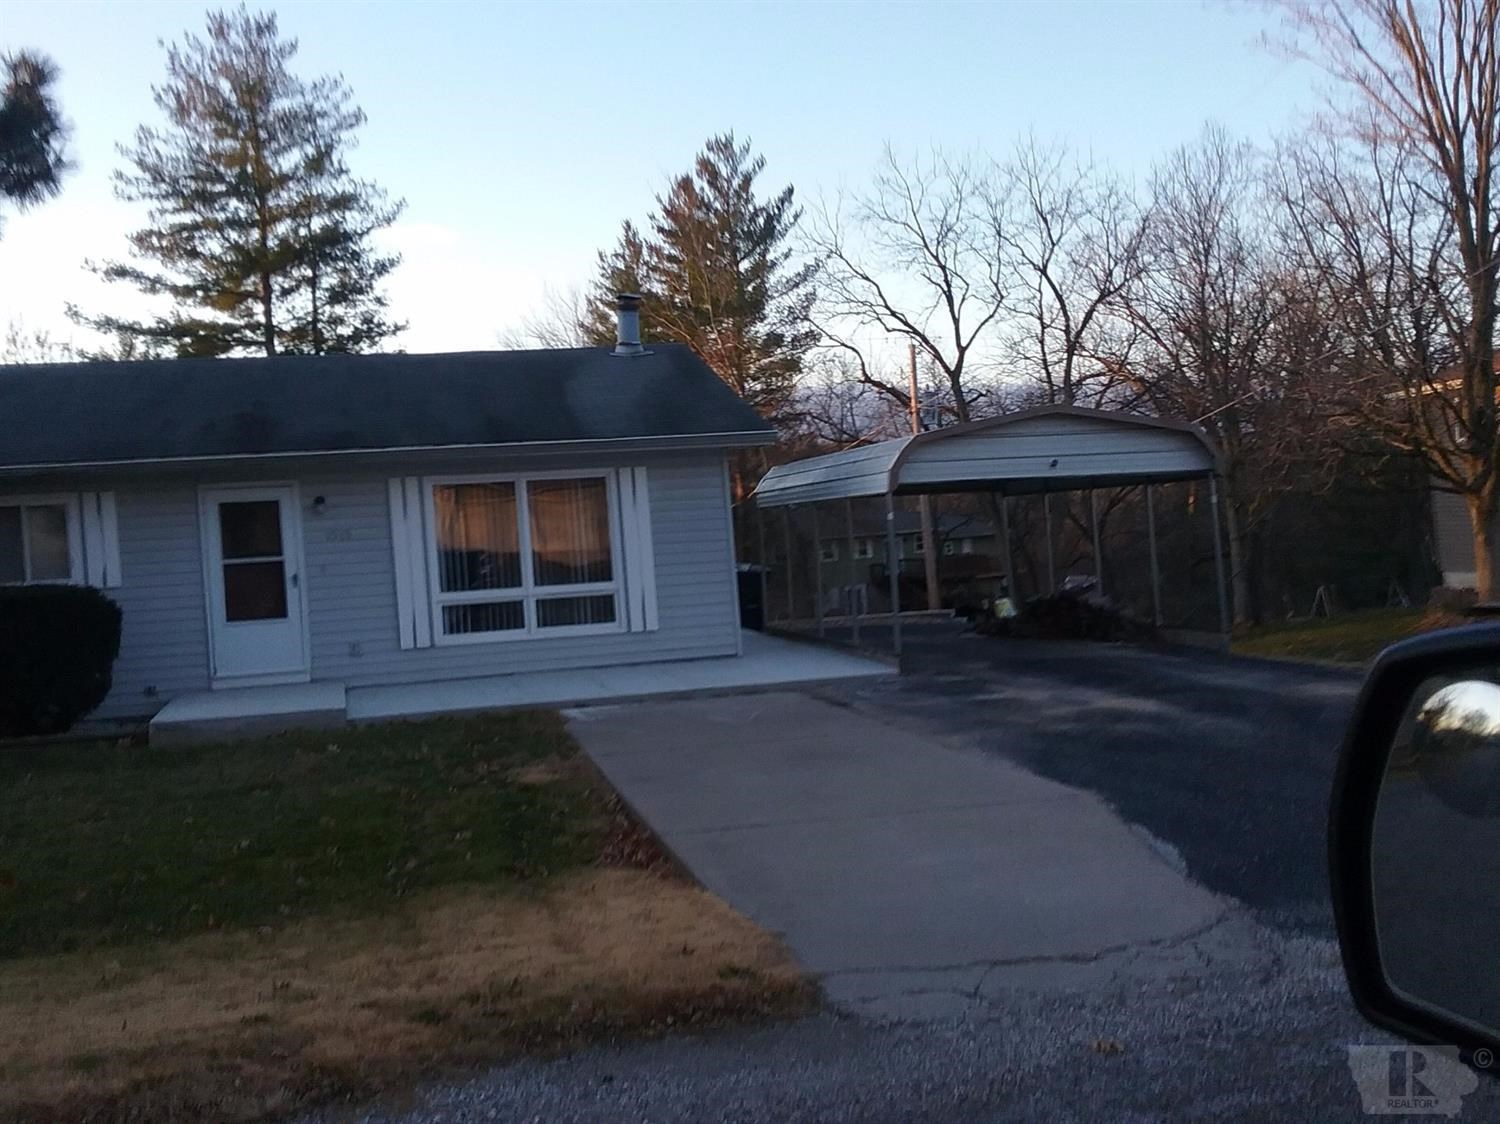 House for sale in Hamilton, IL